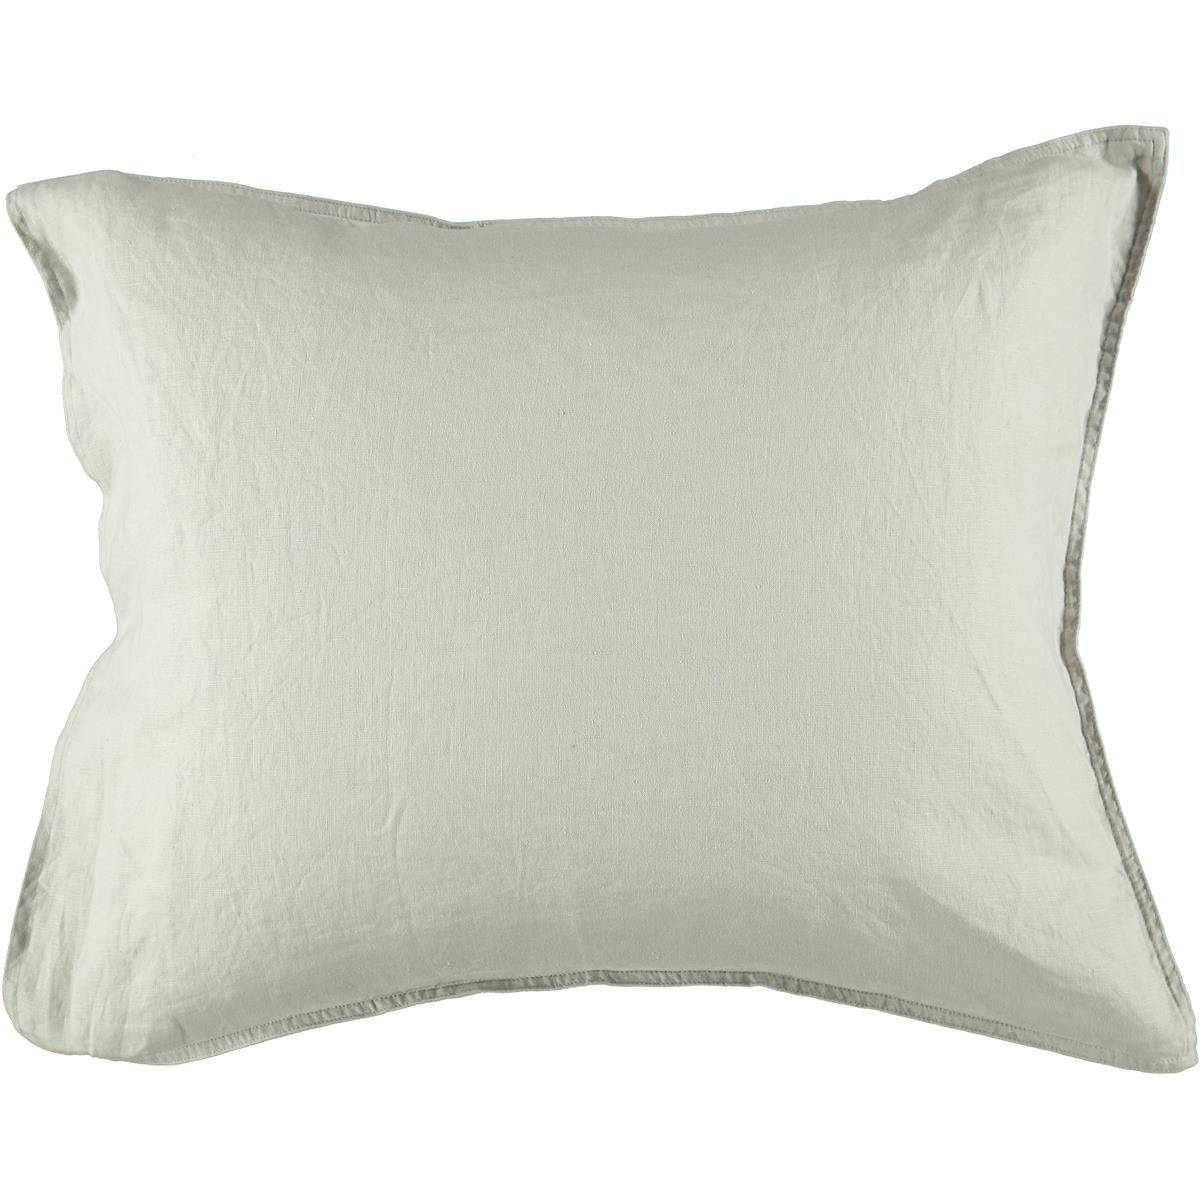 Gripsholm Washed Linen Pillowcase 50x60 cm, Nature